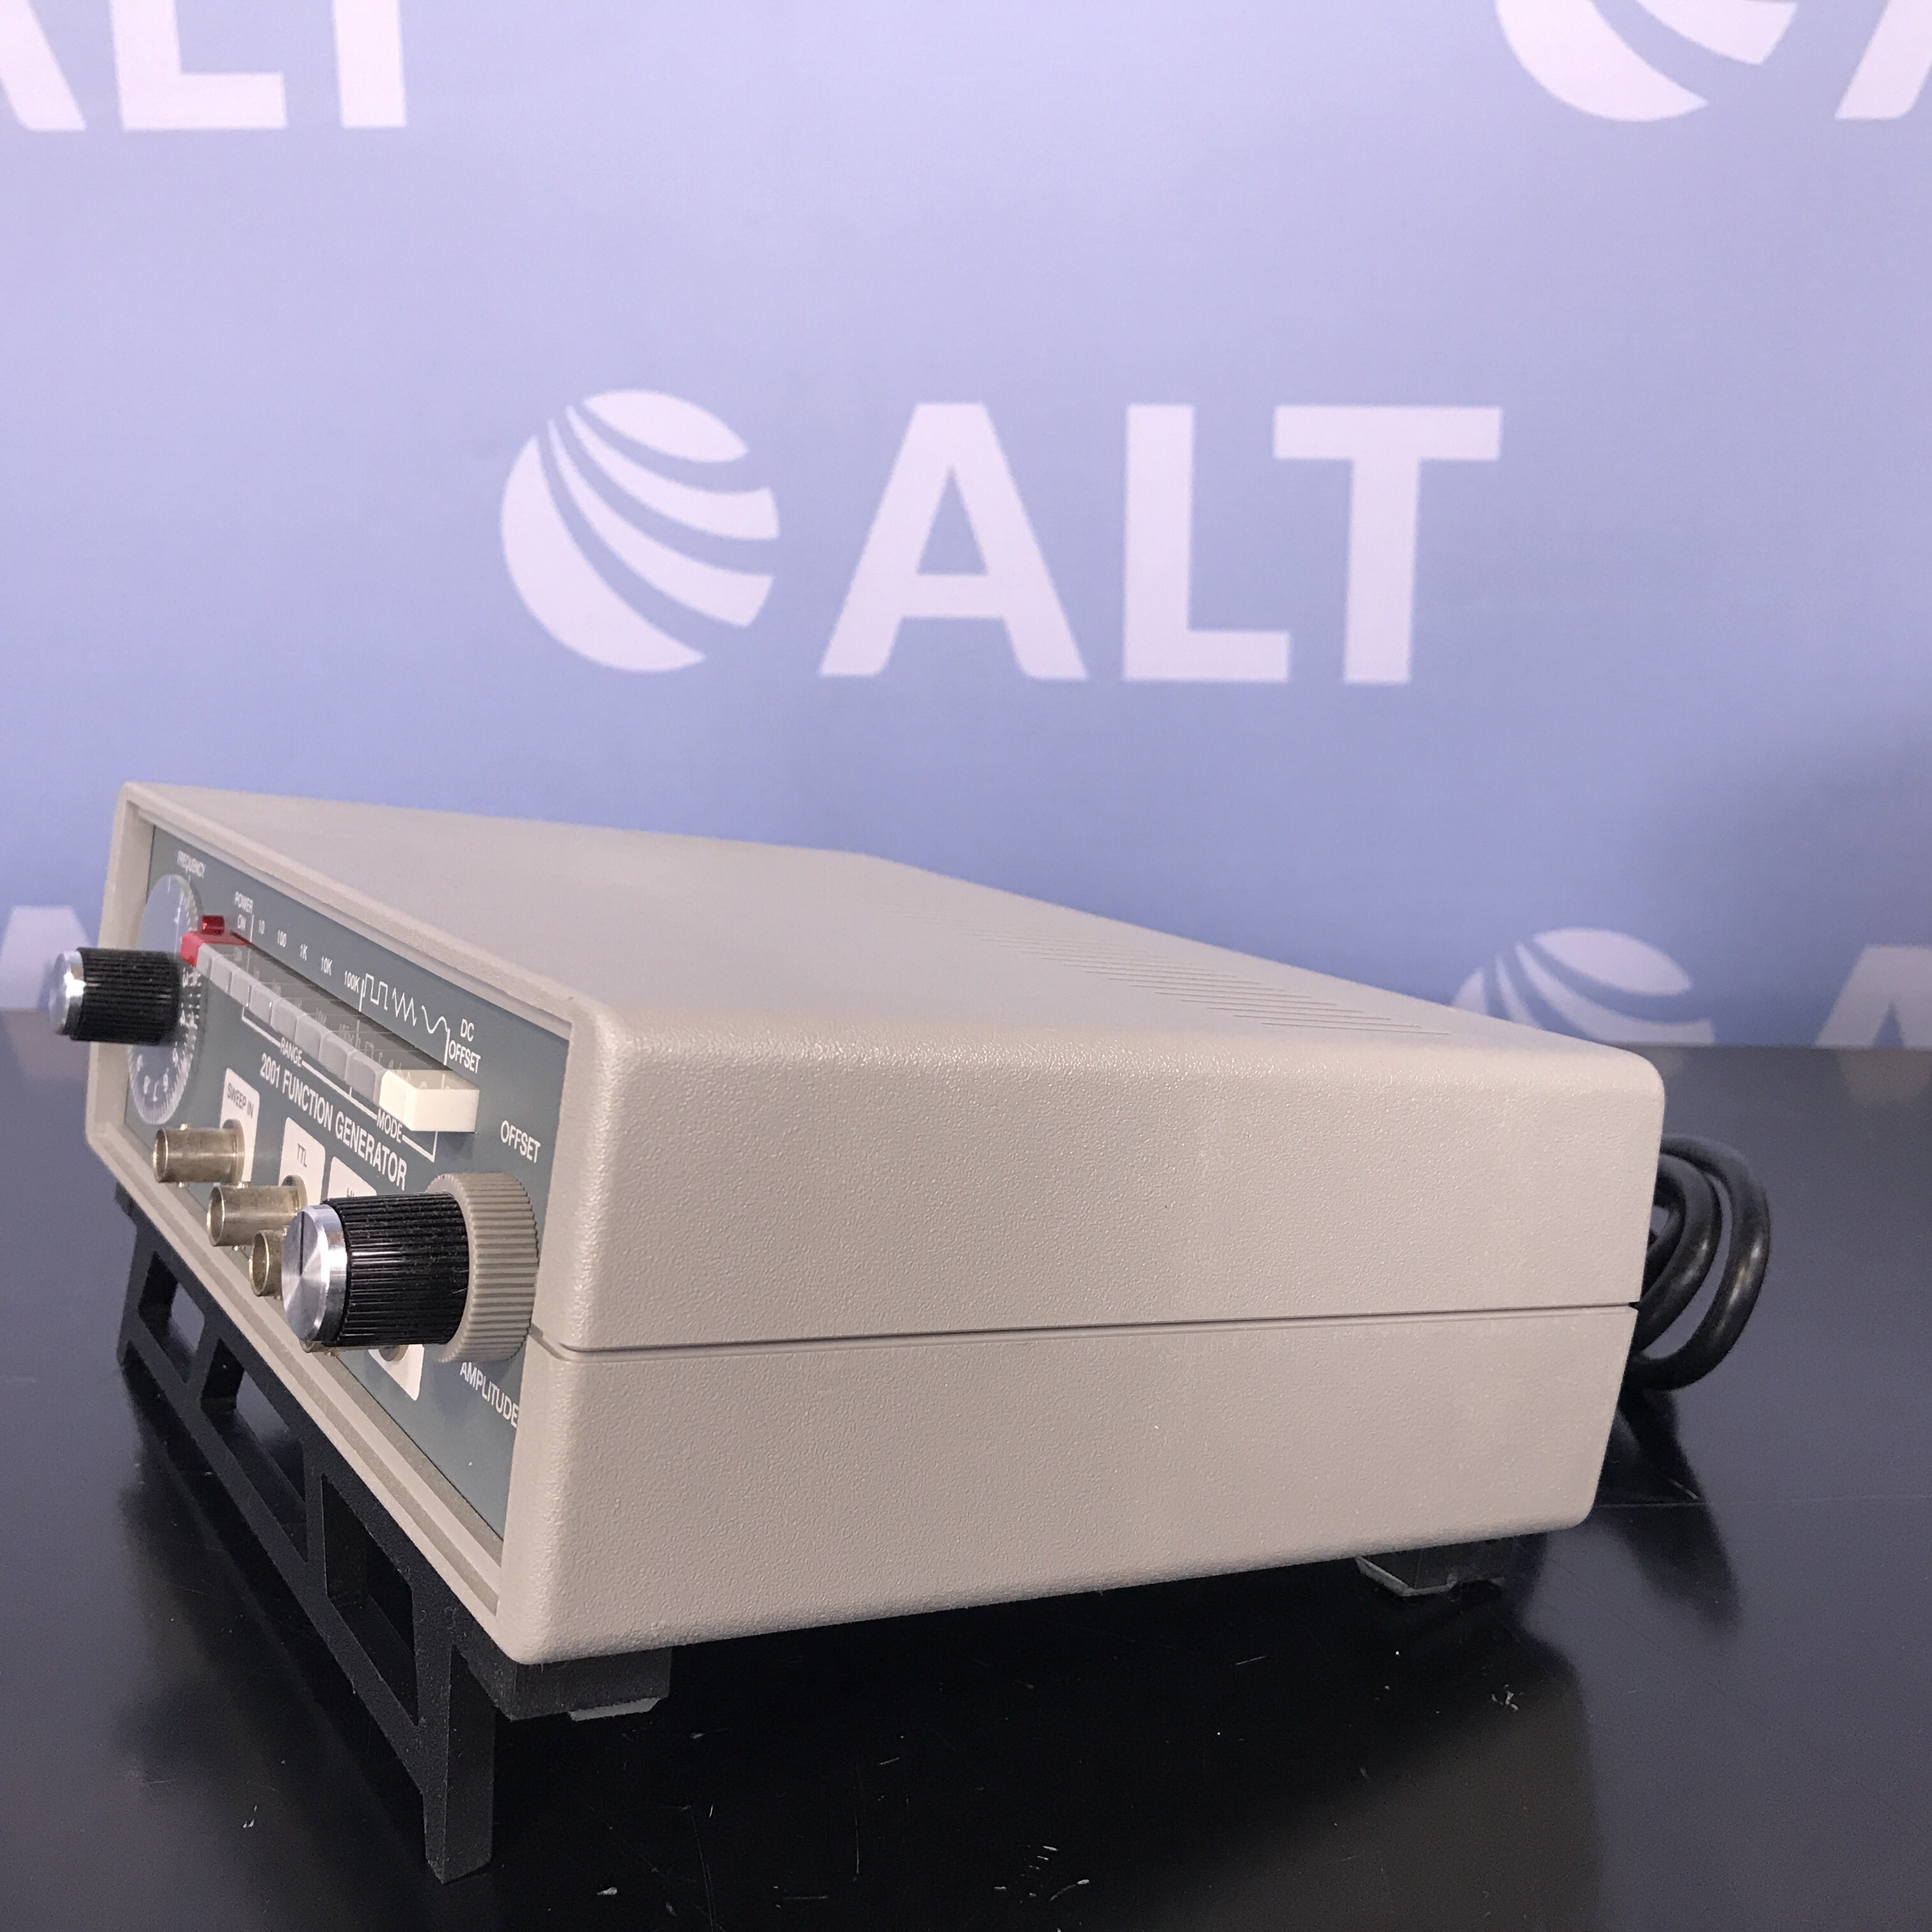 Global Specialties 2001 Function Generator Image